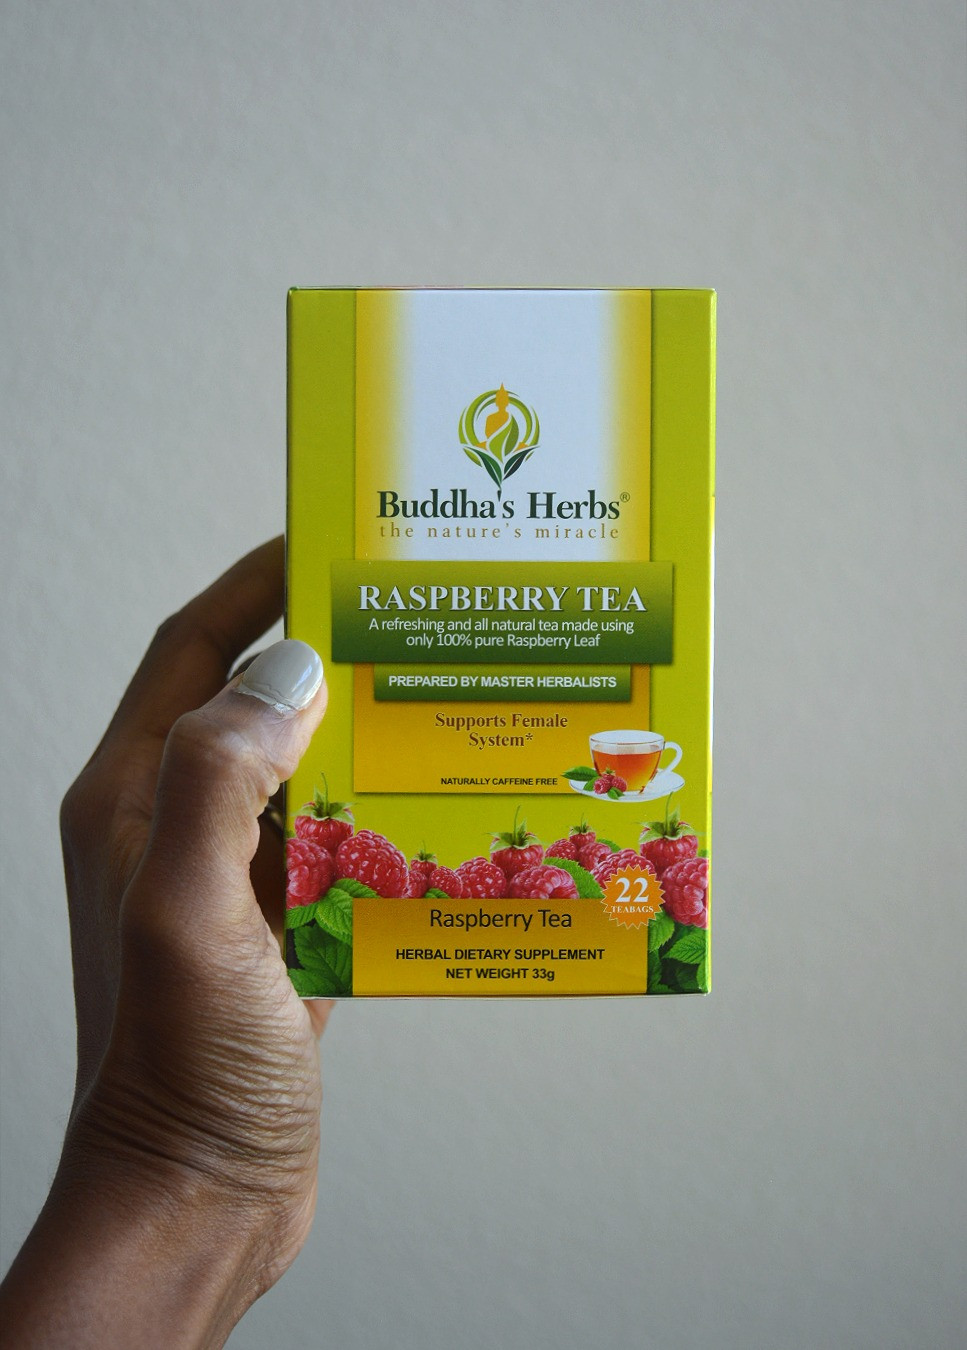 THE EFFECT: Raspberry Tea | Buddha's Herbs